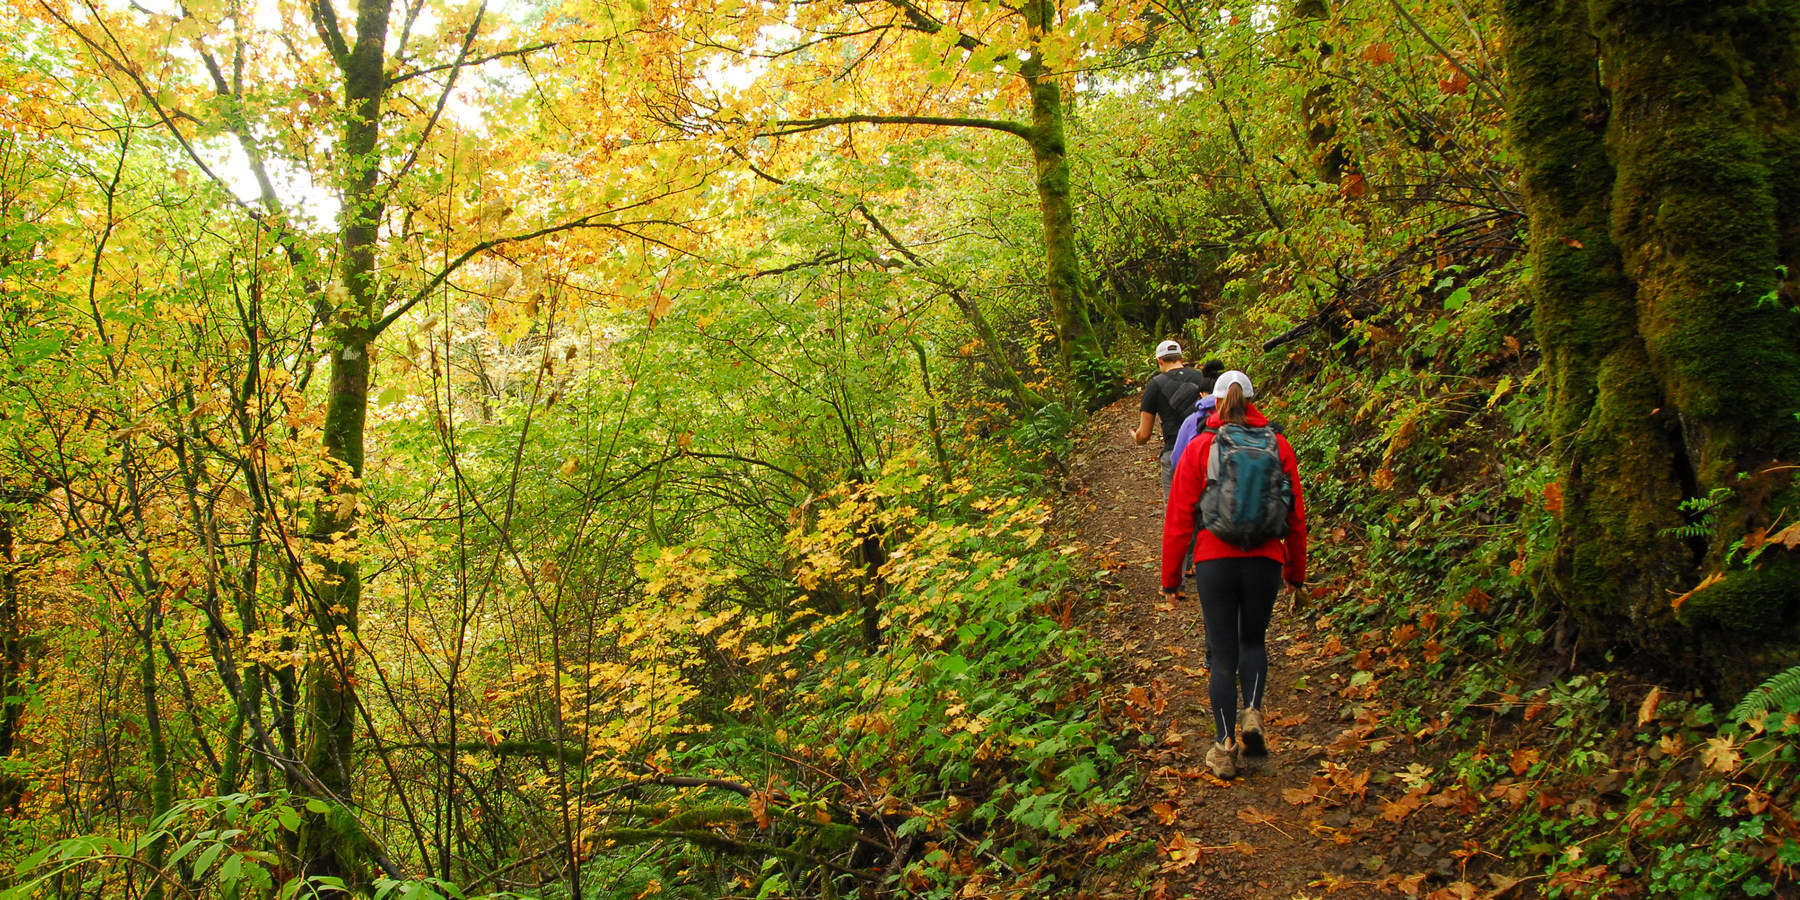 Best Hikes for Fall Colors in Washington - Outdoor Project